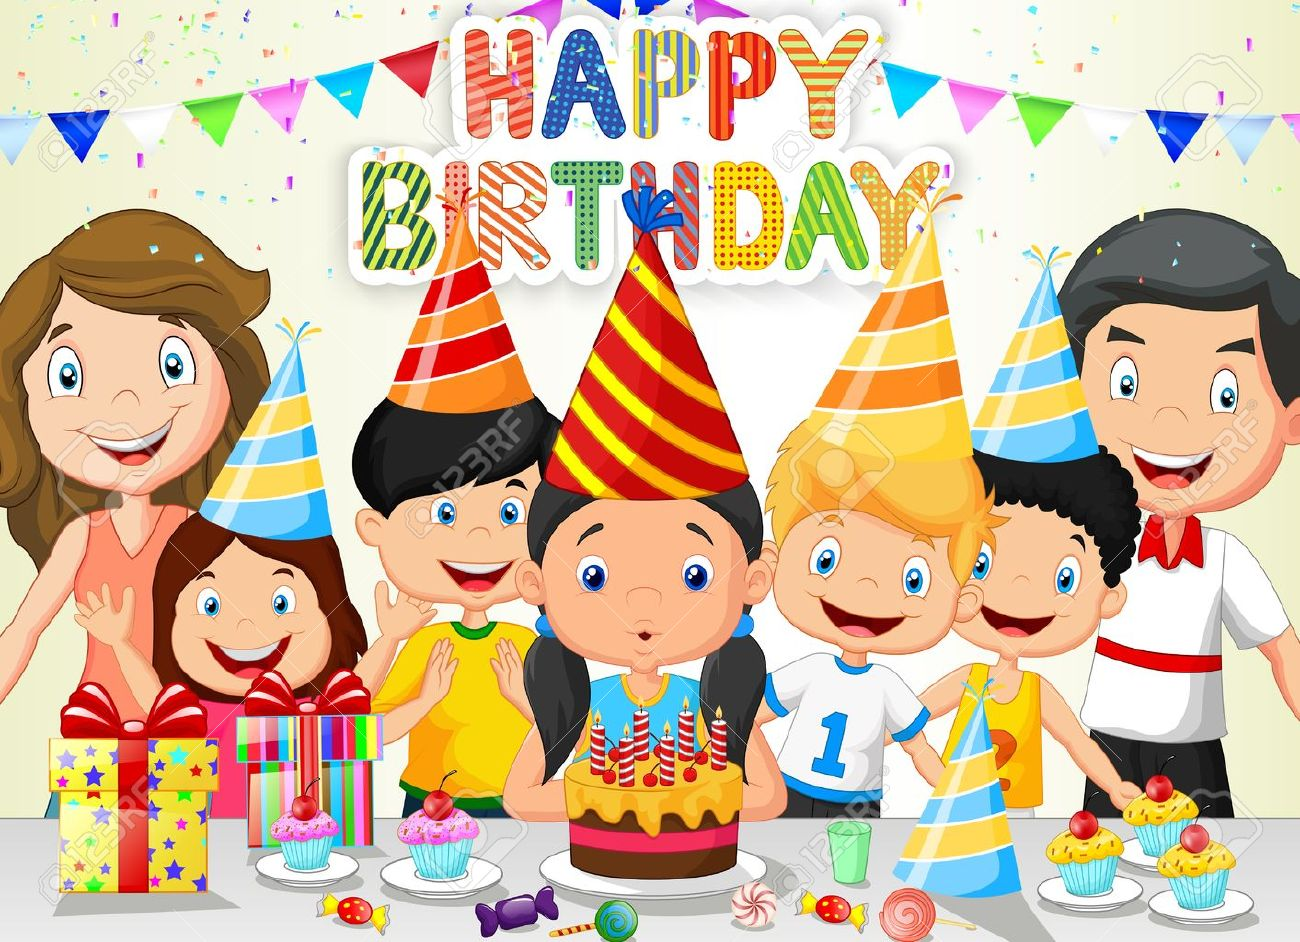 birthday celebration clipart ; 36777829-happy-girl-cartoon-blowing-birthday-candles-with-his-family-and-friends